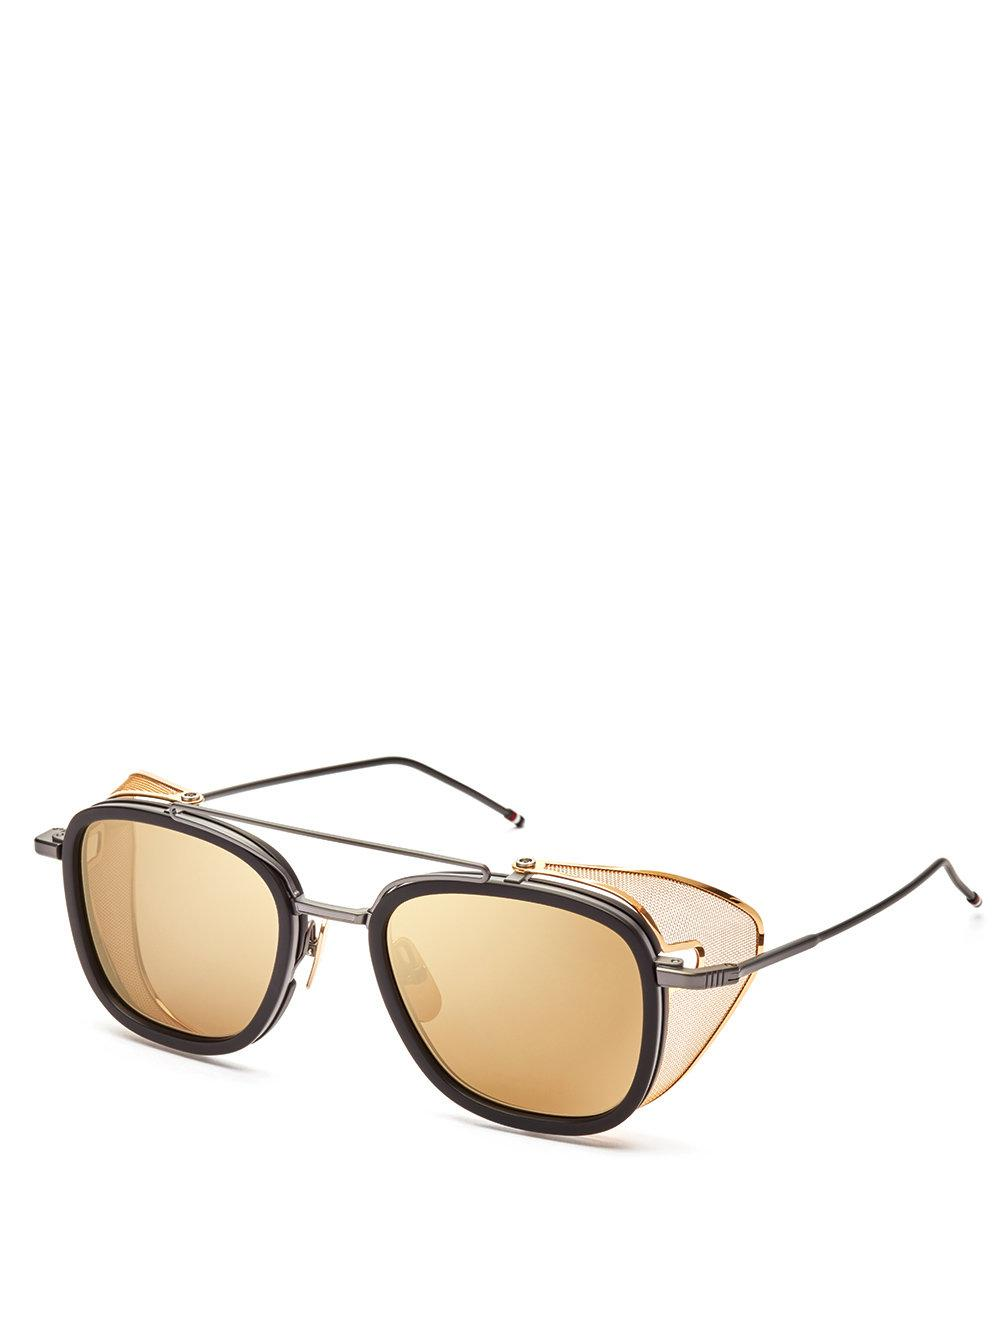 Thom Browne Eyewear Gold & Brown Aviator Sunglasses Buy Cheap Really Cheap Amazon Outlet Best Sale NgB7fS6oW